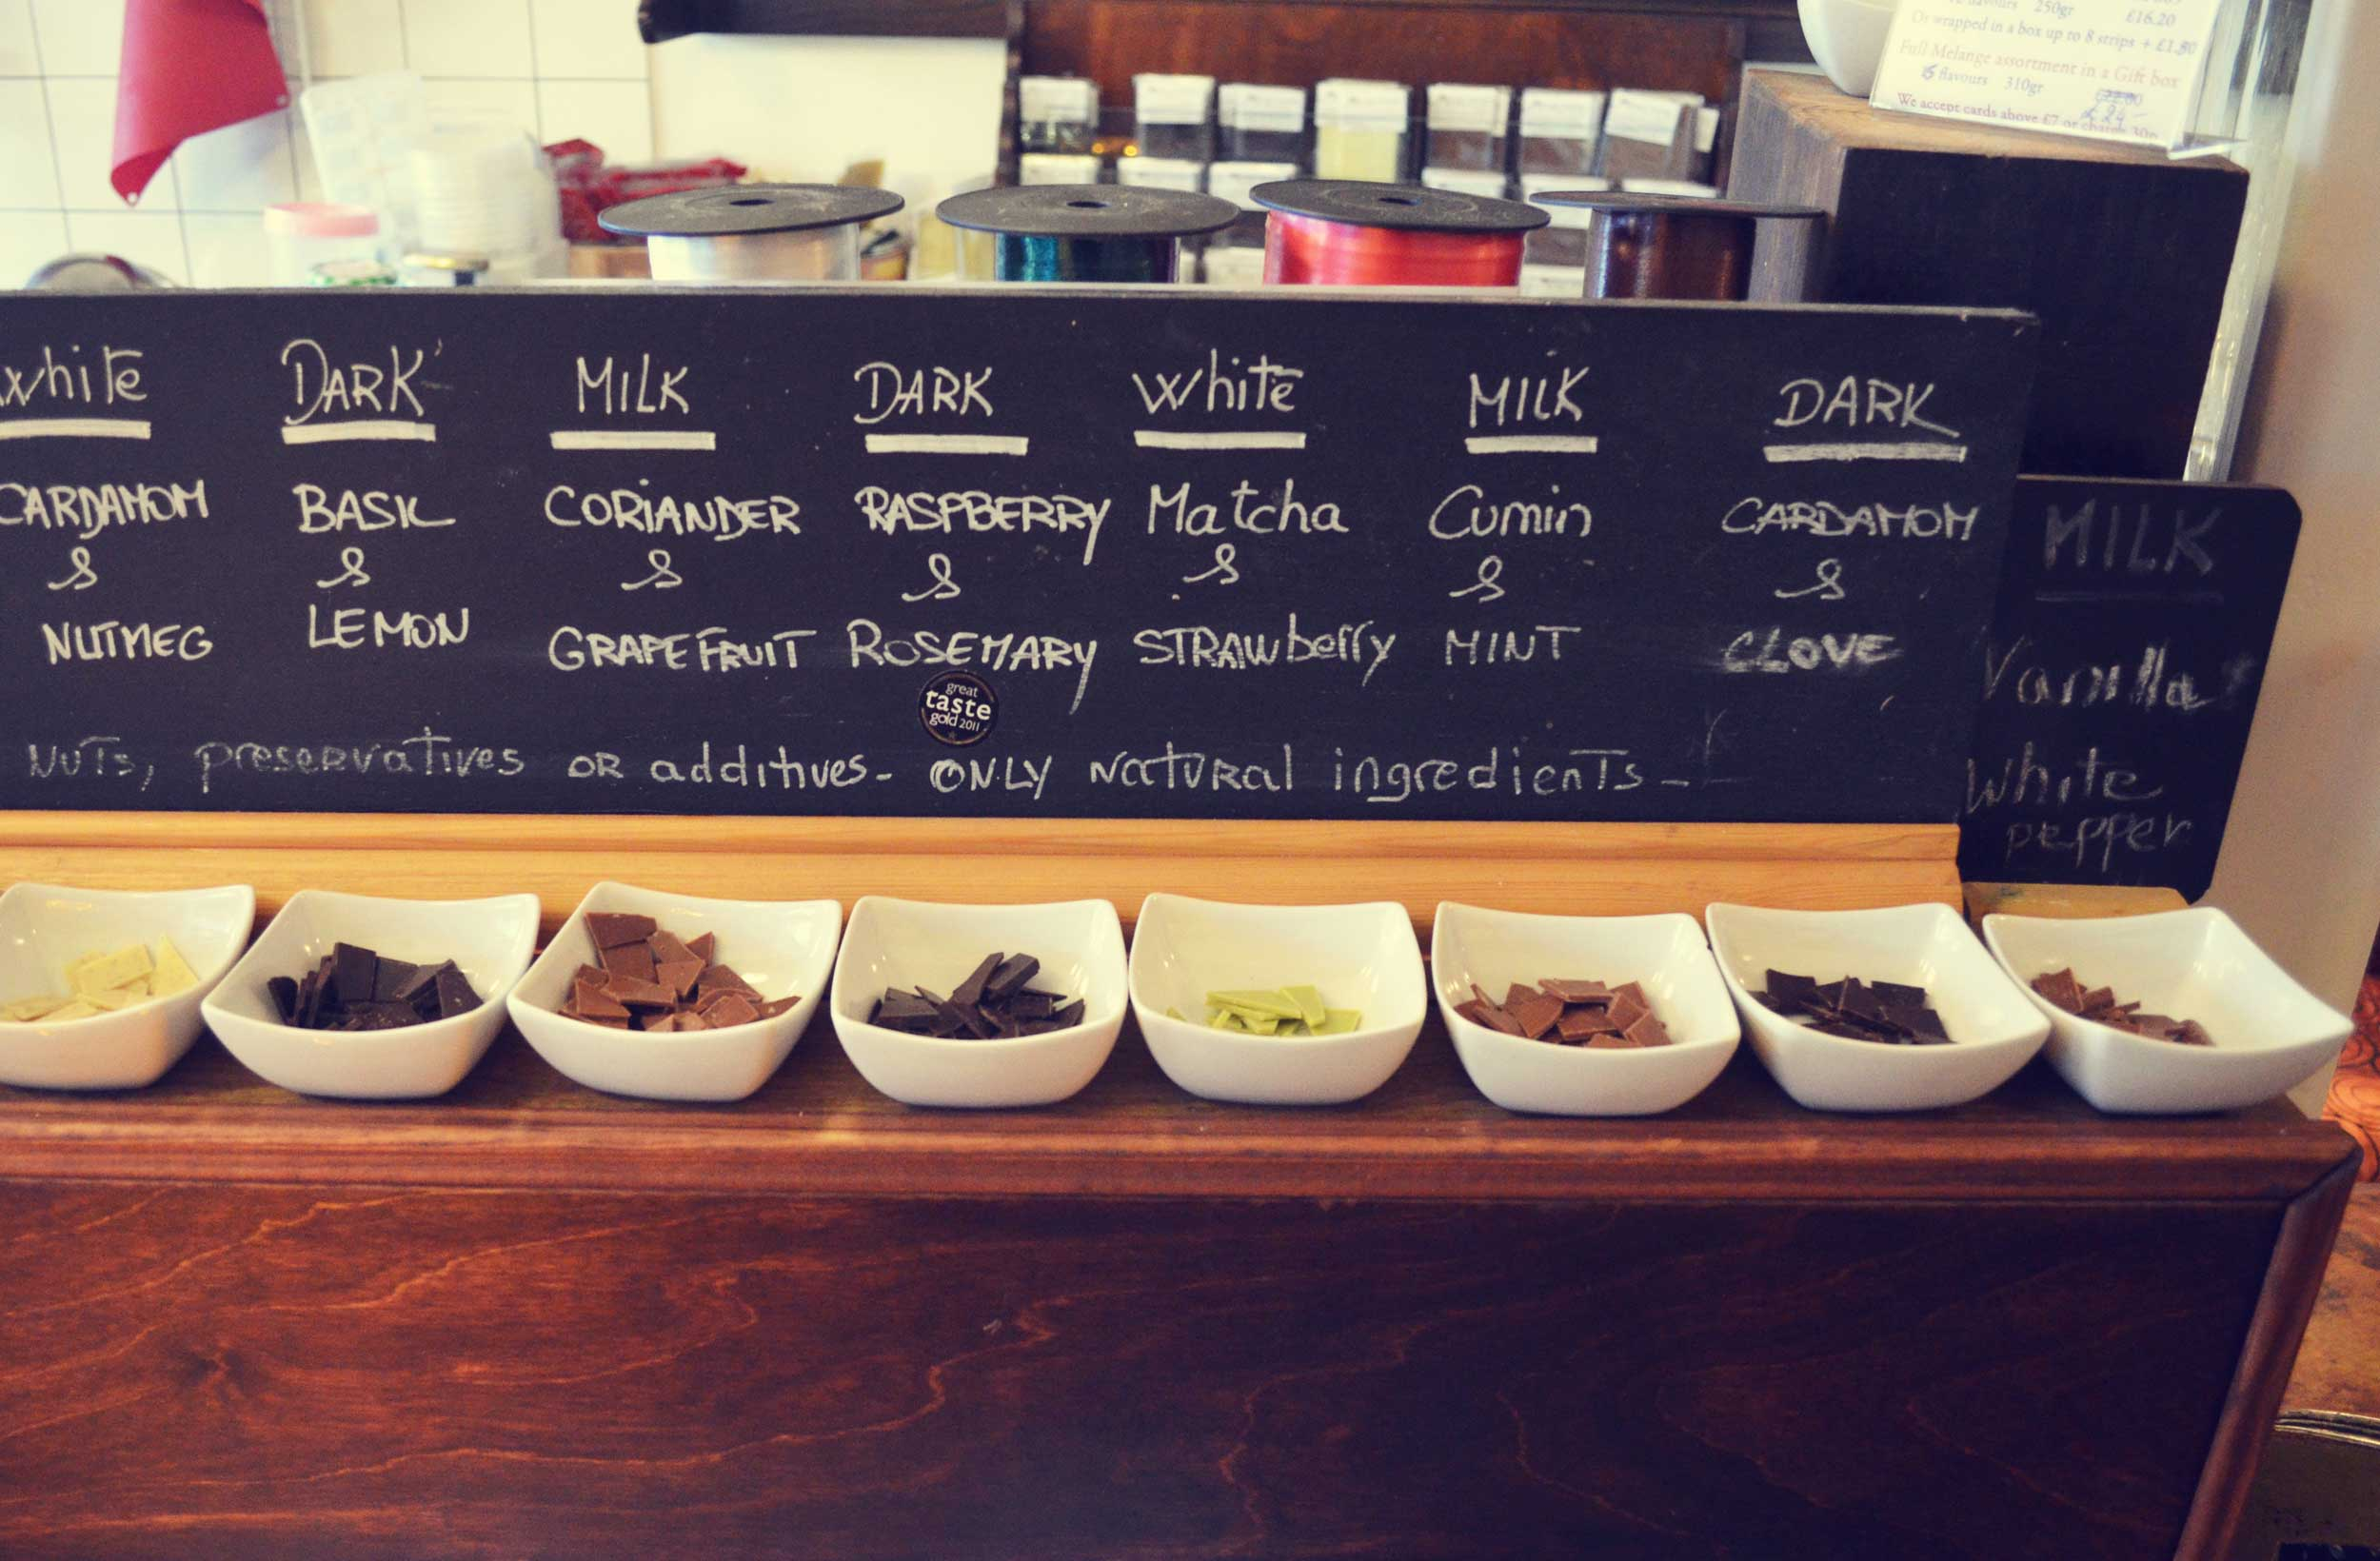 Bowls containing variously flavoredchocolate pieces all lined up in front of a blackboard, Peckham, London